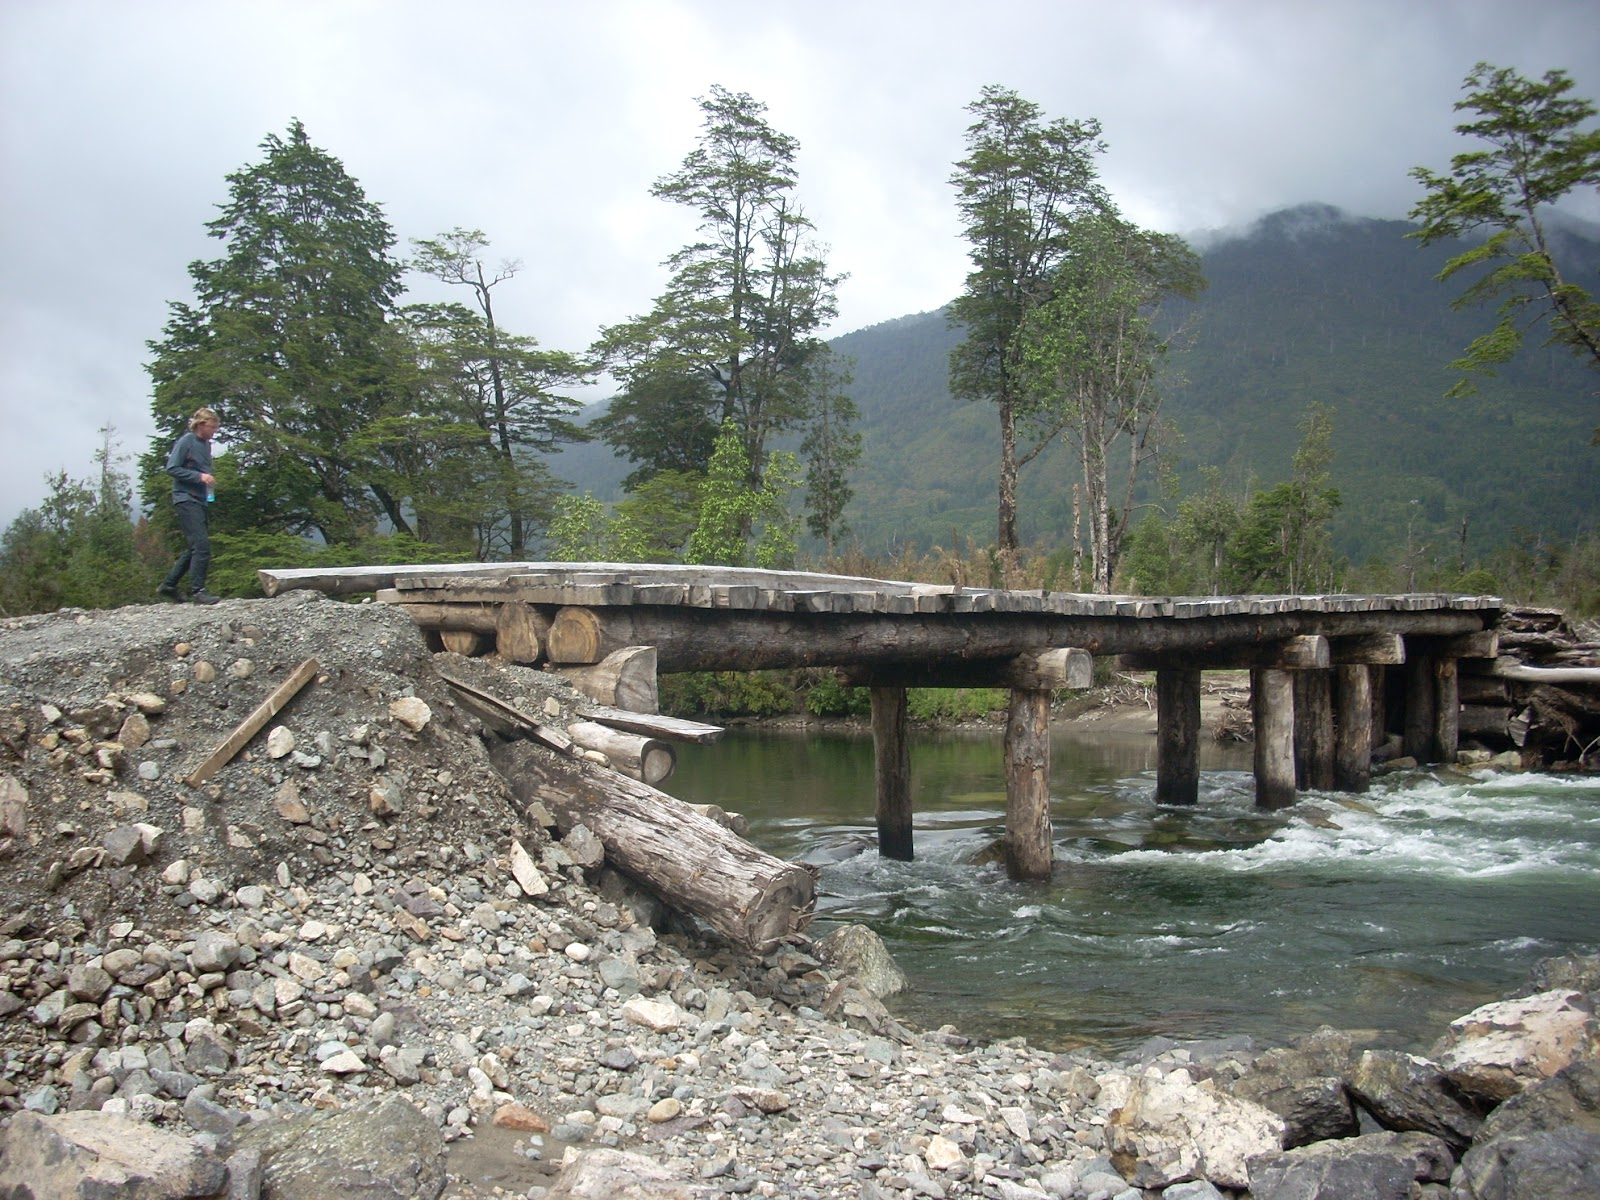 Lunch stop, at a dodgy bridge, where one end had collapsed. Seemed strong enough for us though.